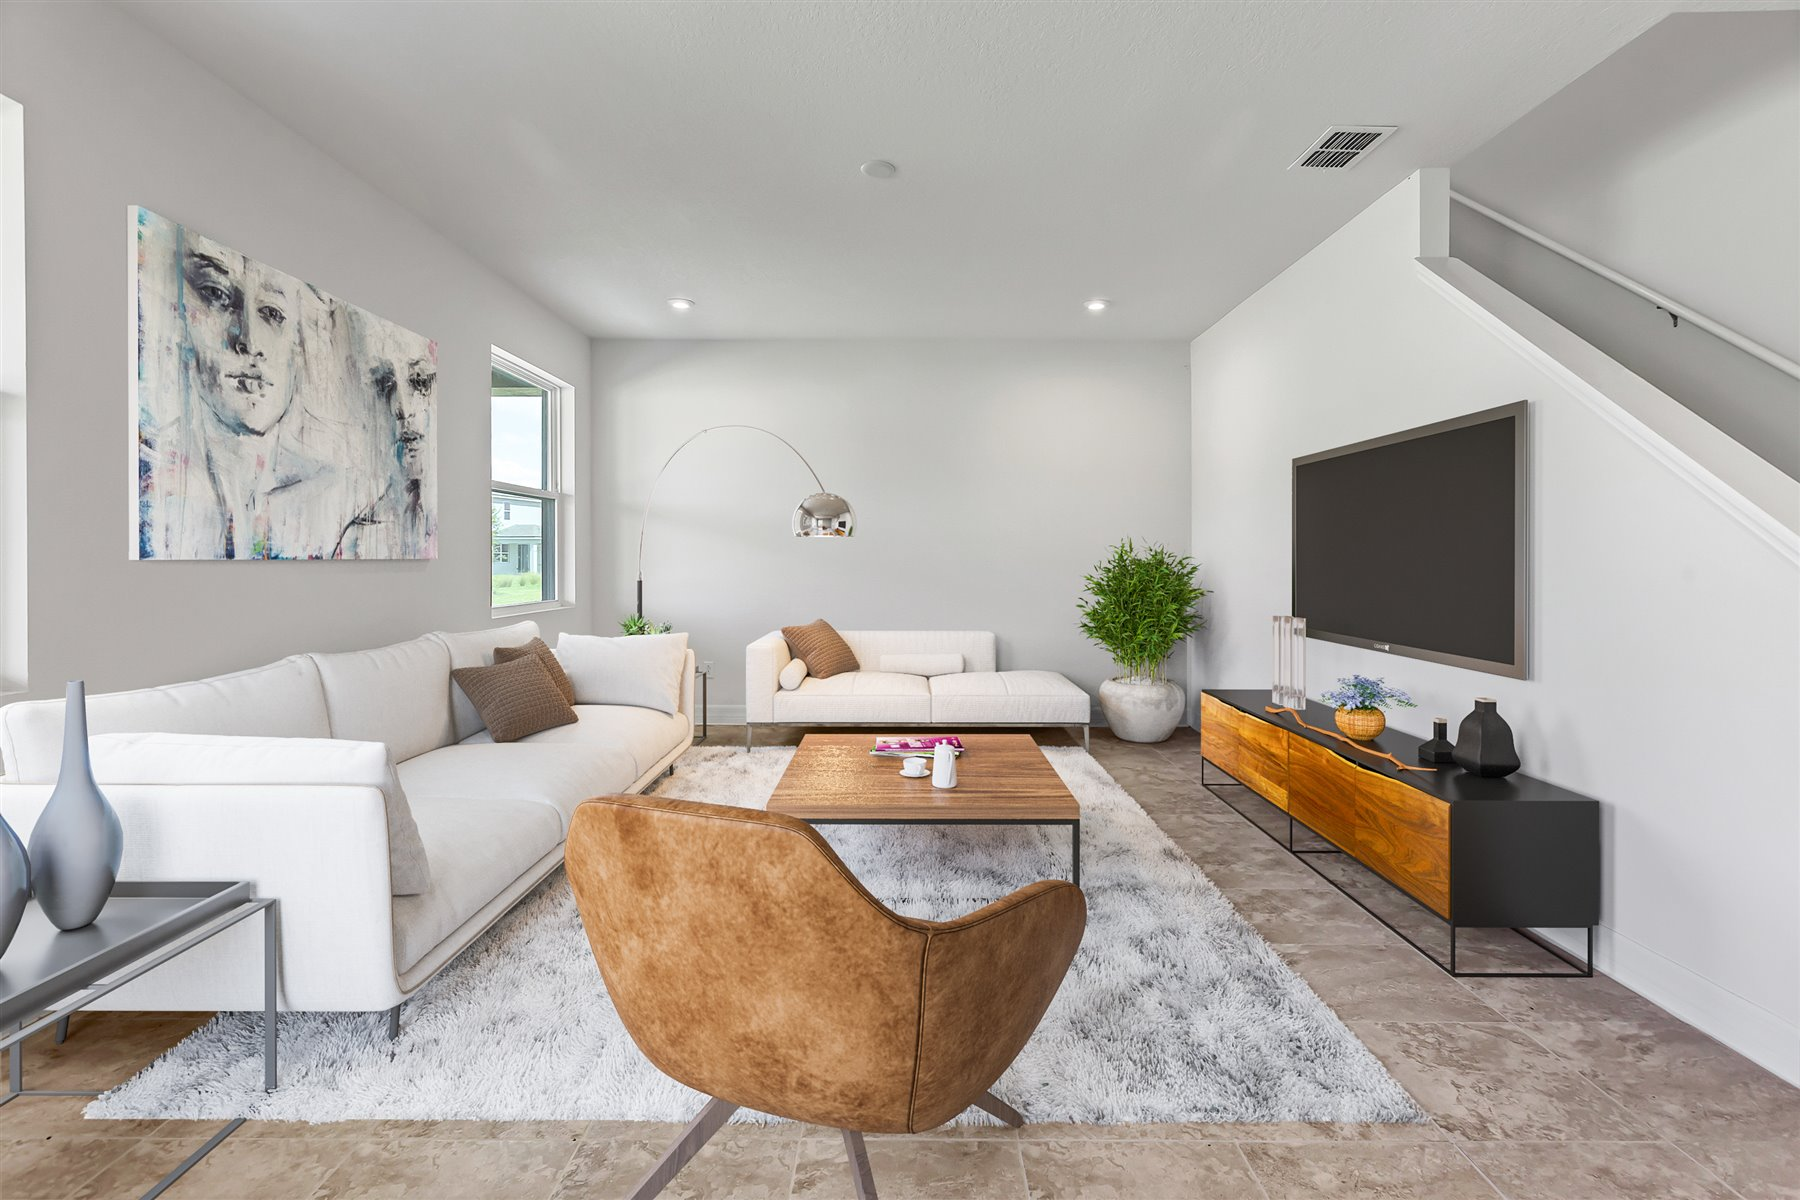 Newport Plan Media Room at Meridian Parks in Orlando Florida by Mattamy Homes